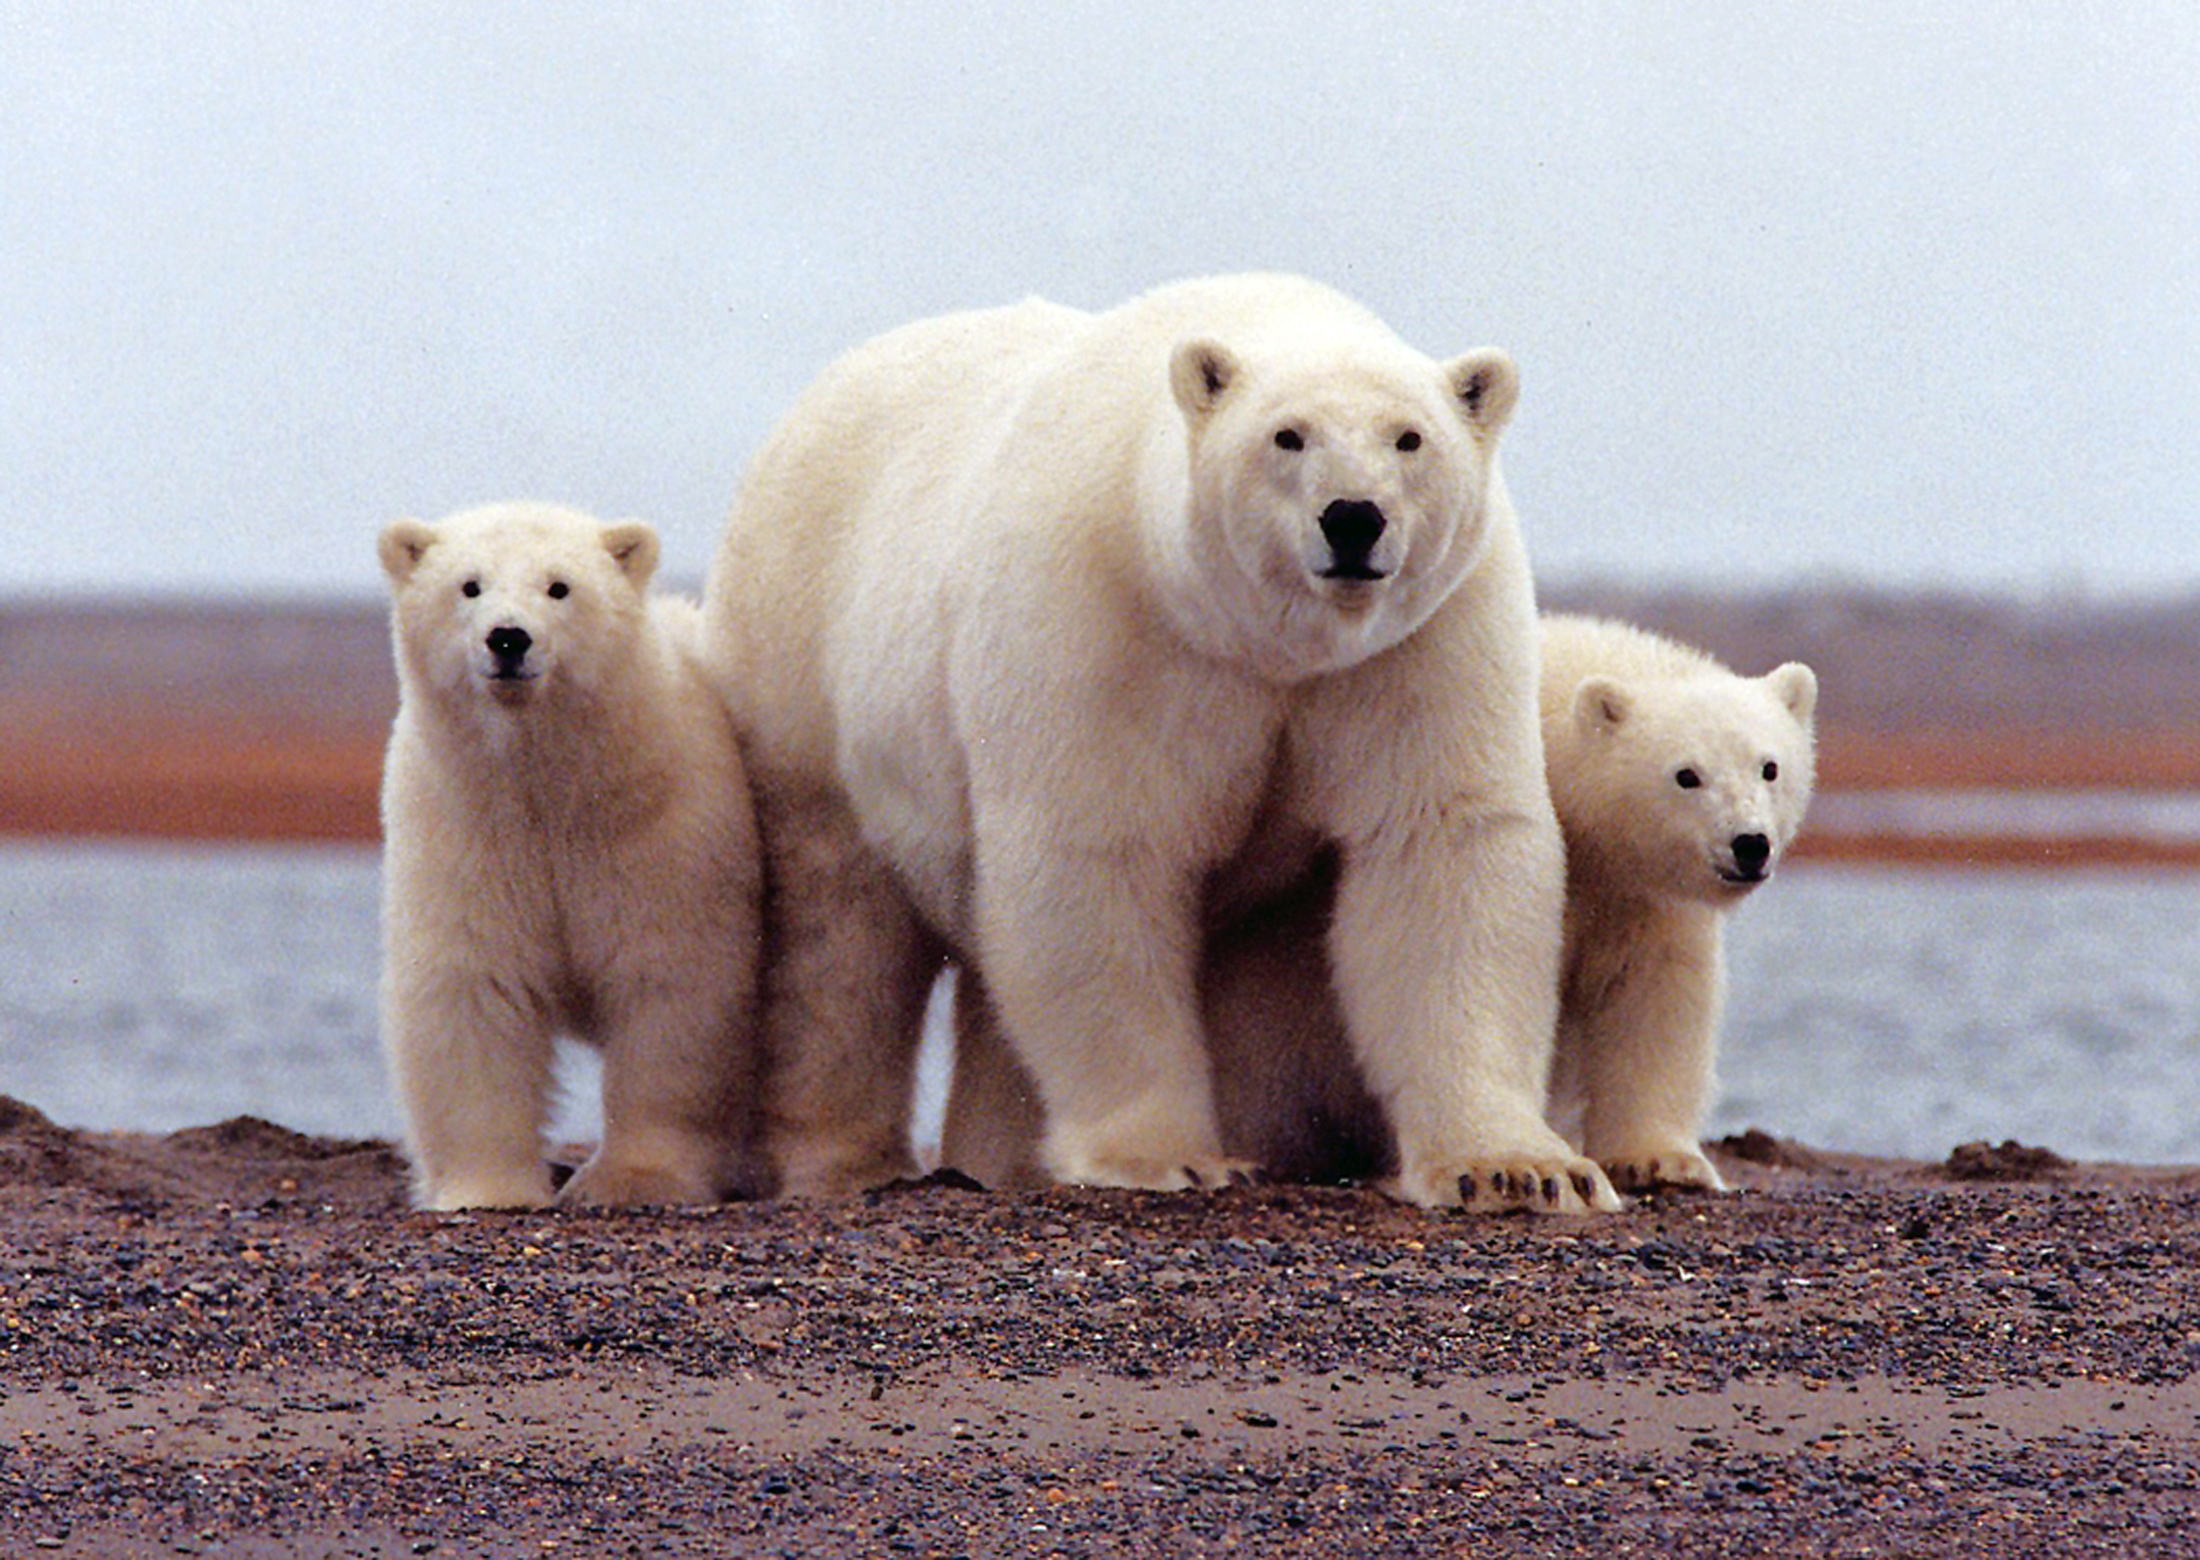 for polar bears melting ice in the arctic means less room to roam